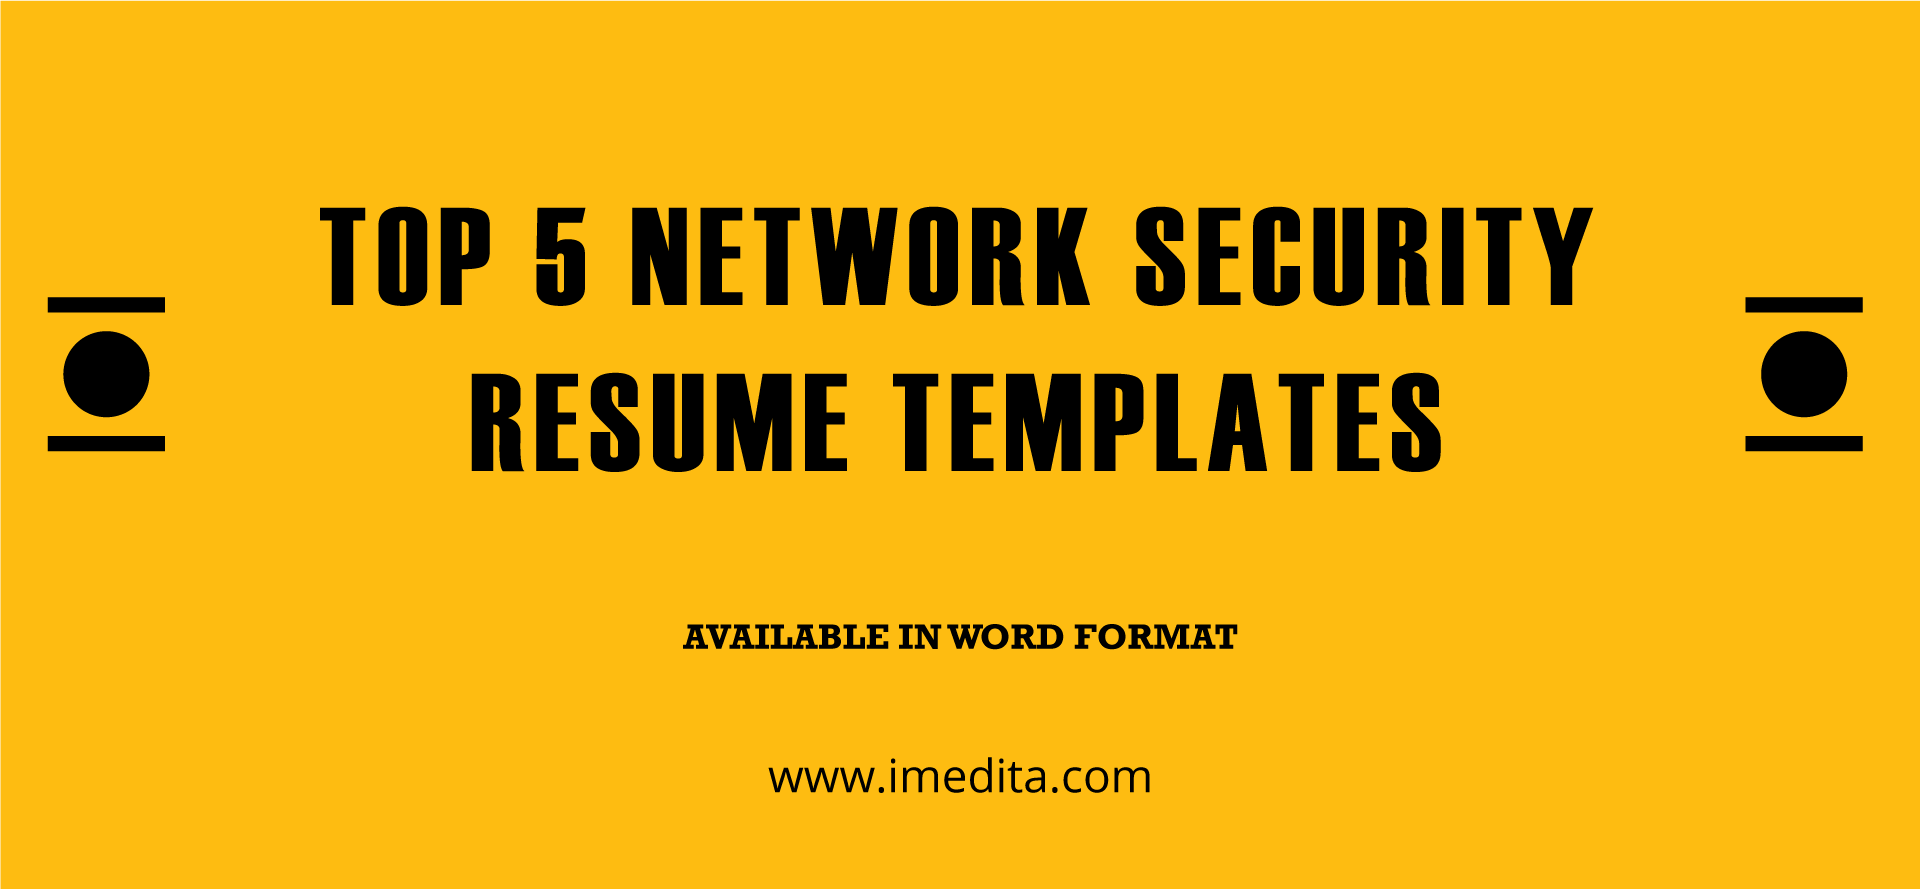 Top 5 Network Security Resume Templates